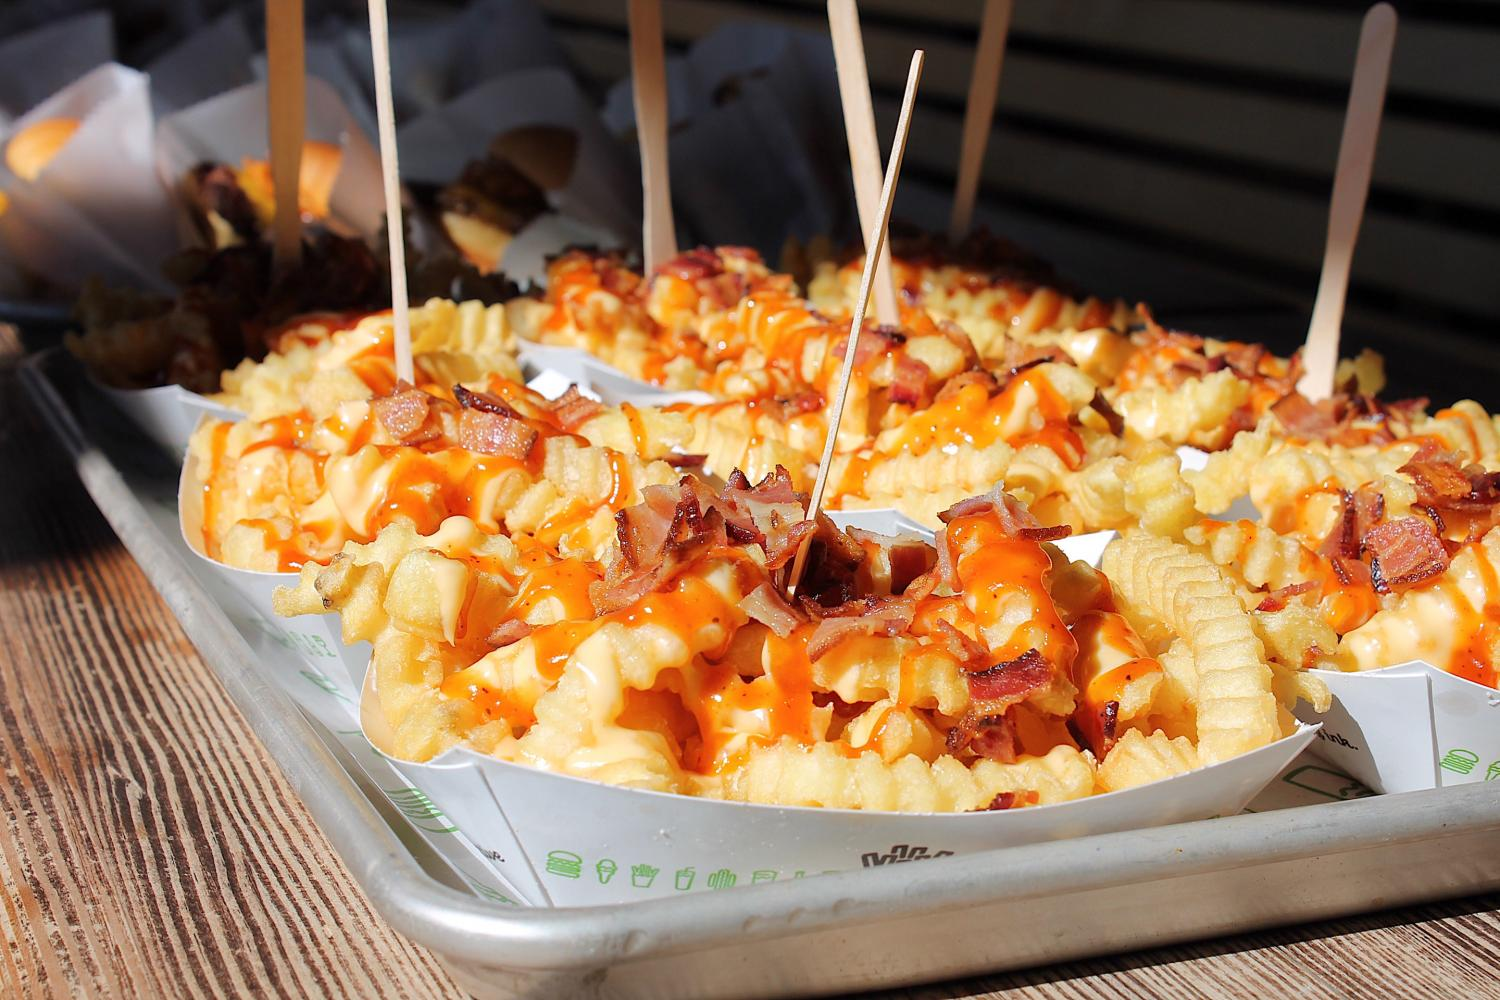 The BBQ Bacon Cheese Fries at Shake Shack is one of the menu items featured for a limited time.